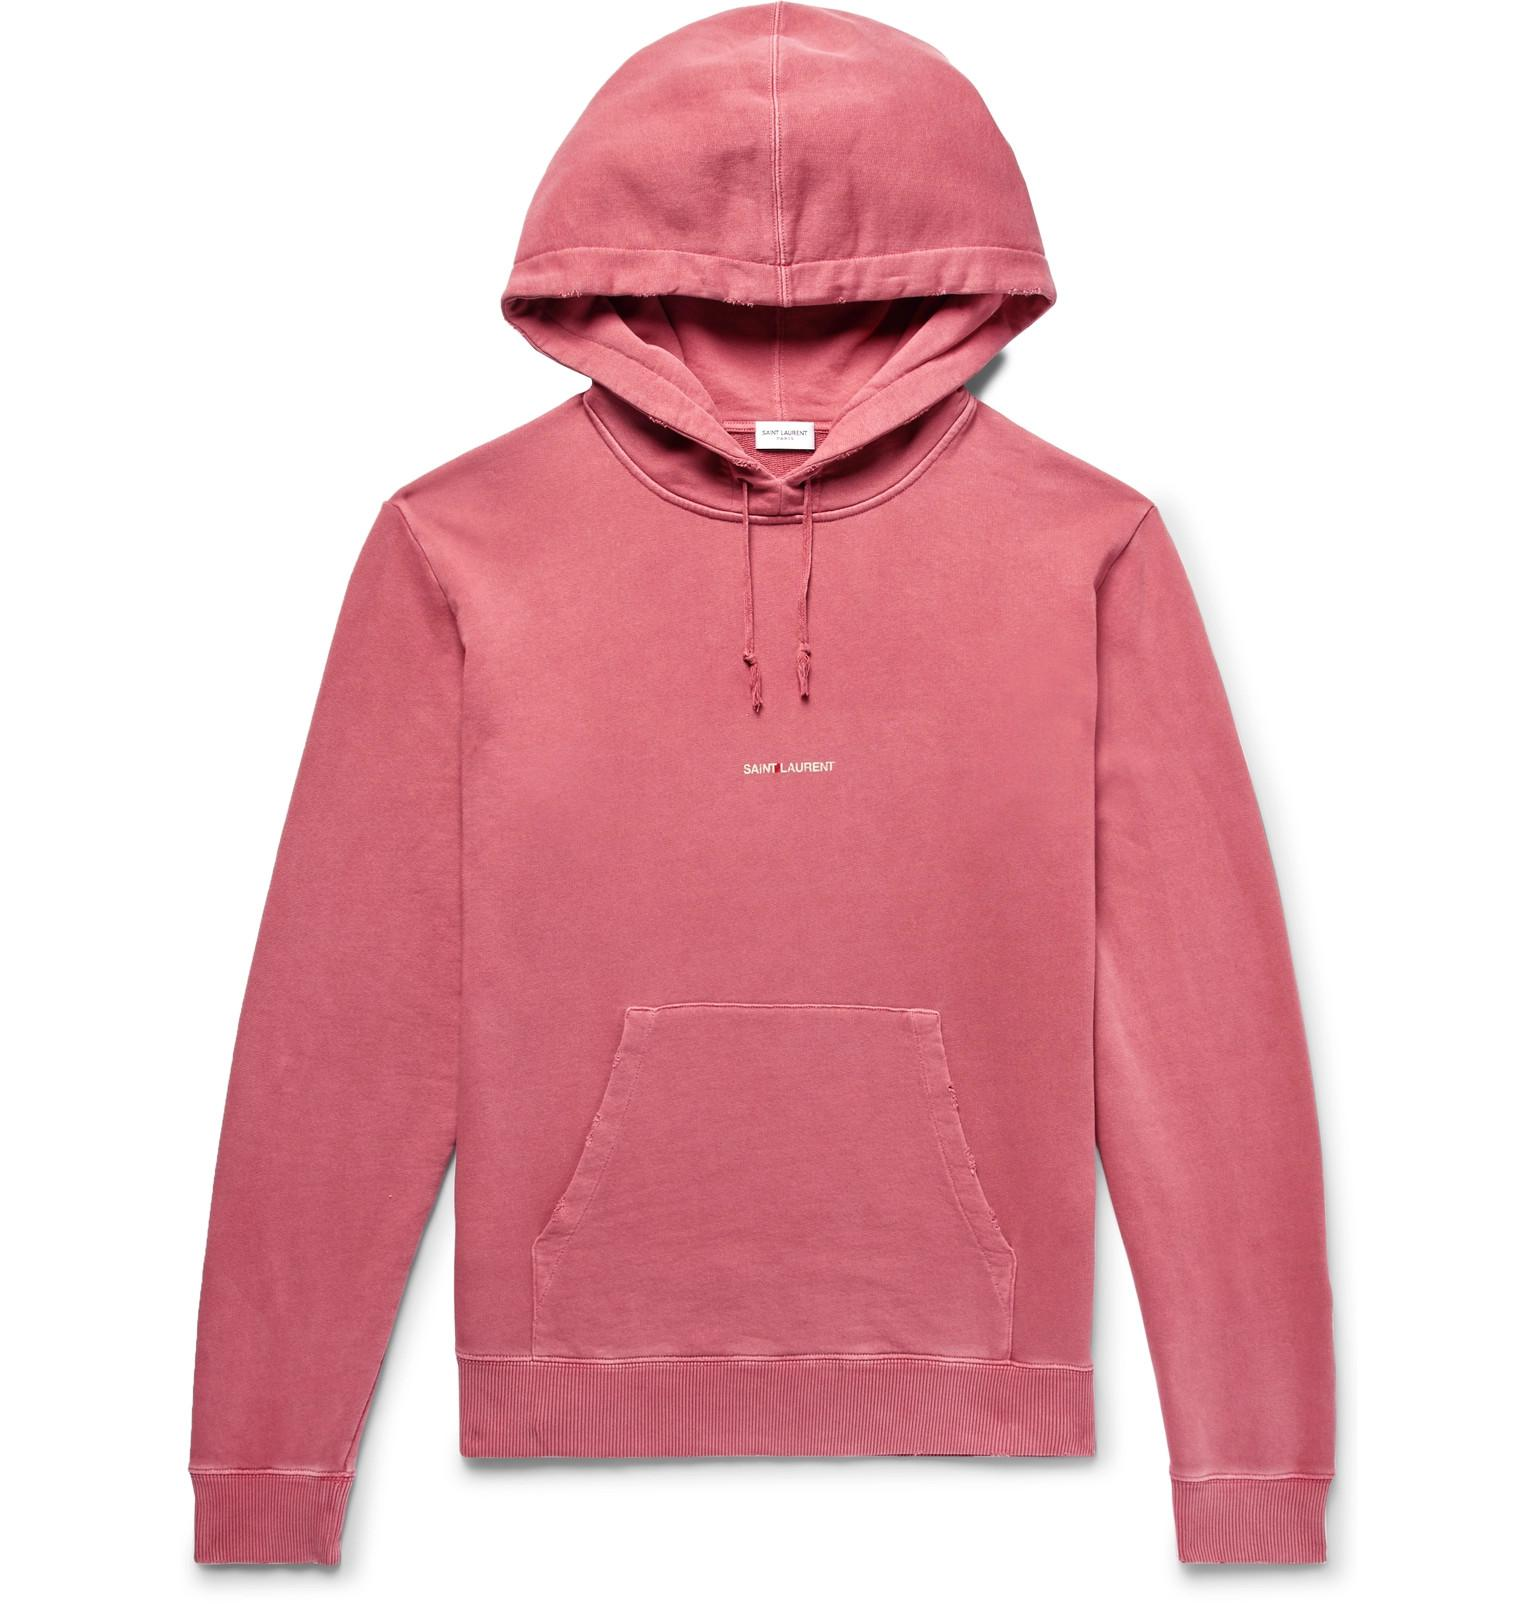 Distressed Cotton Pink Print Fullscreen Jersey Logo Loopback Men Hoodie View Saint Laurent For 5BYpqwtI